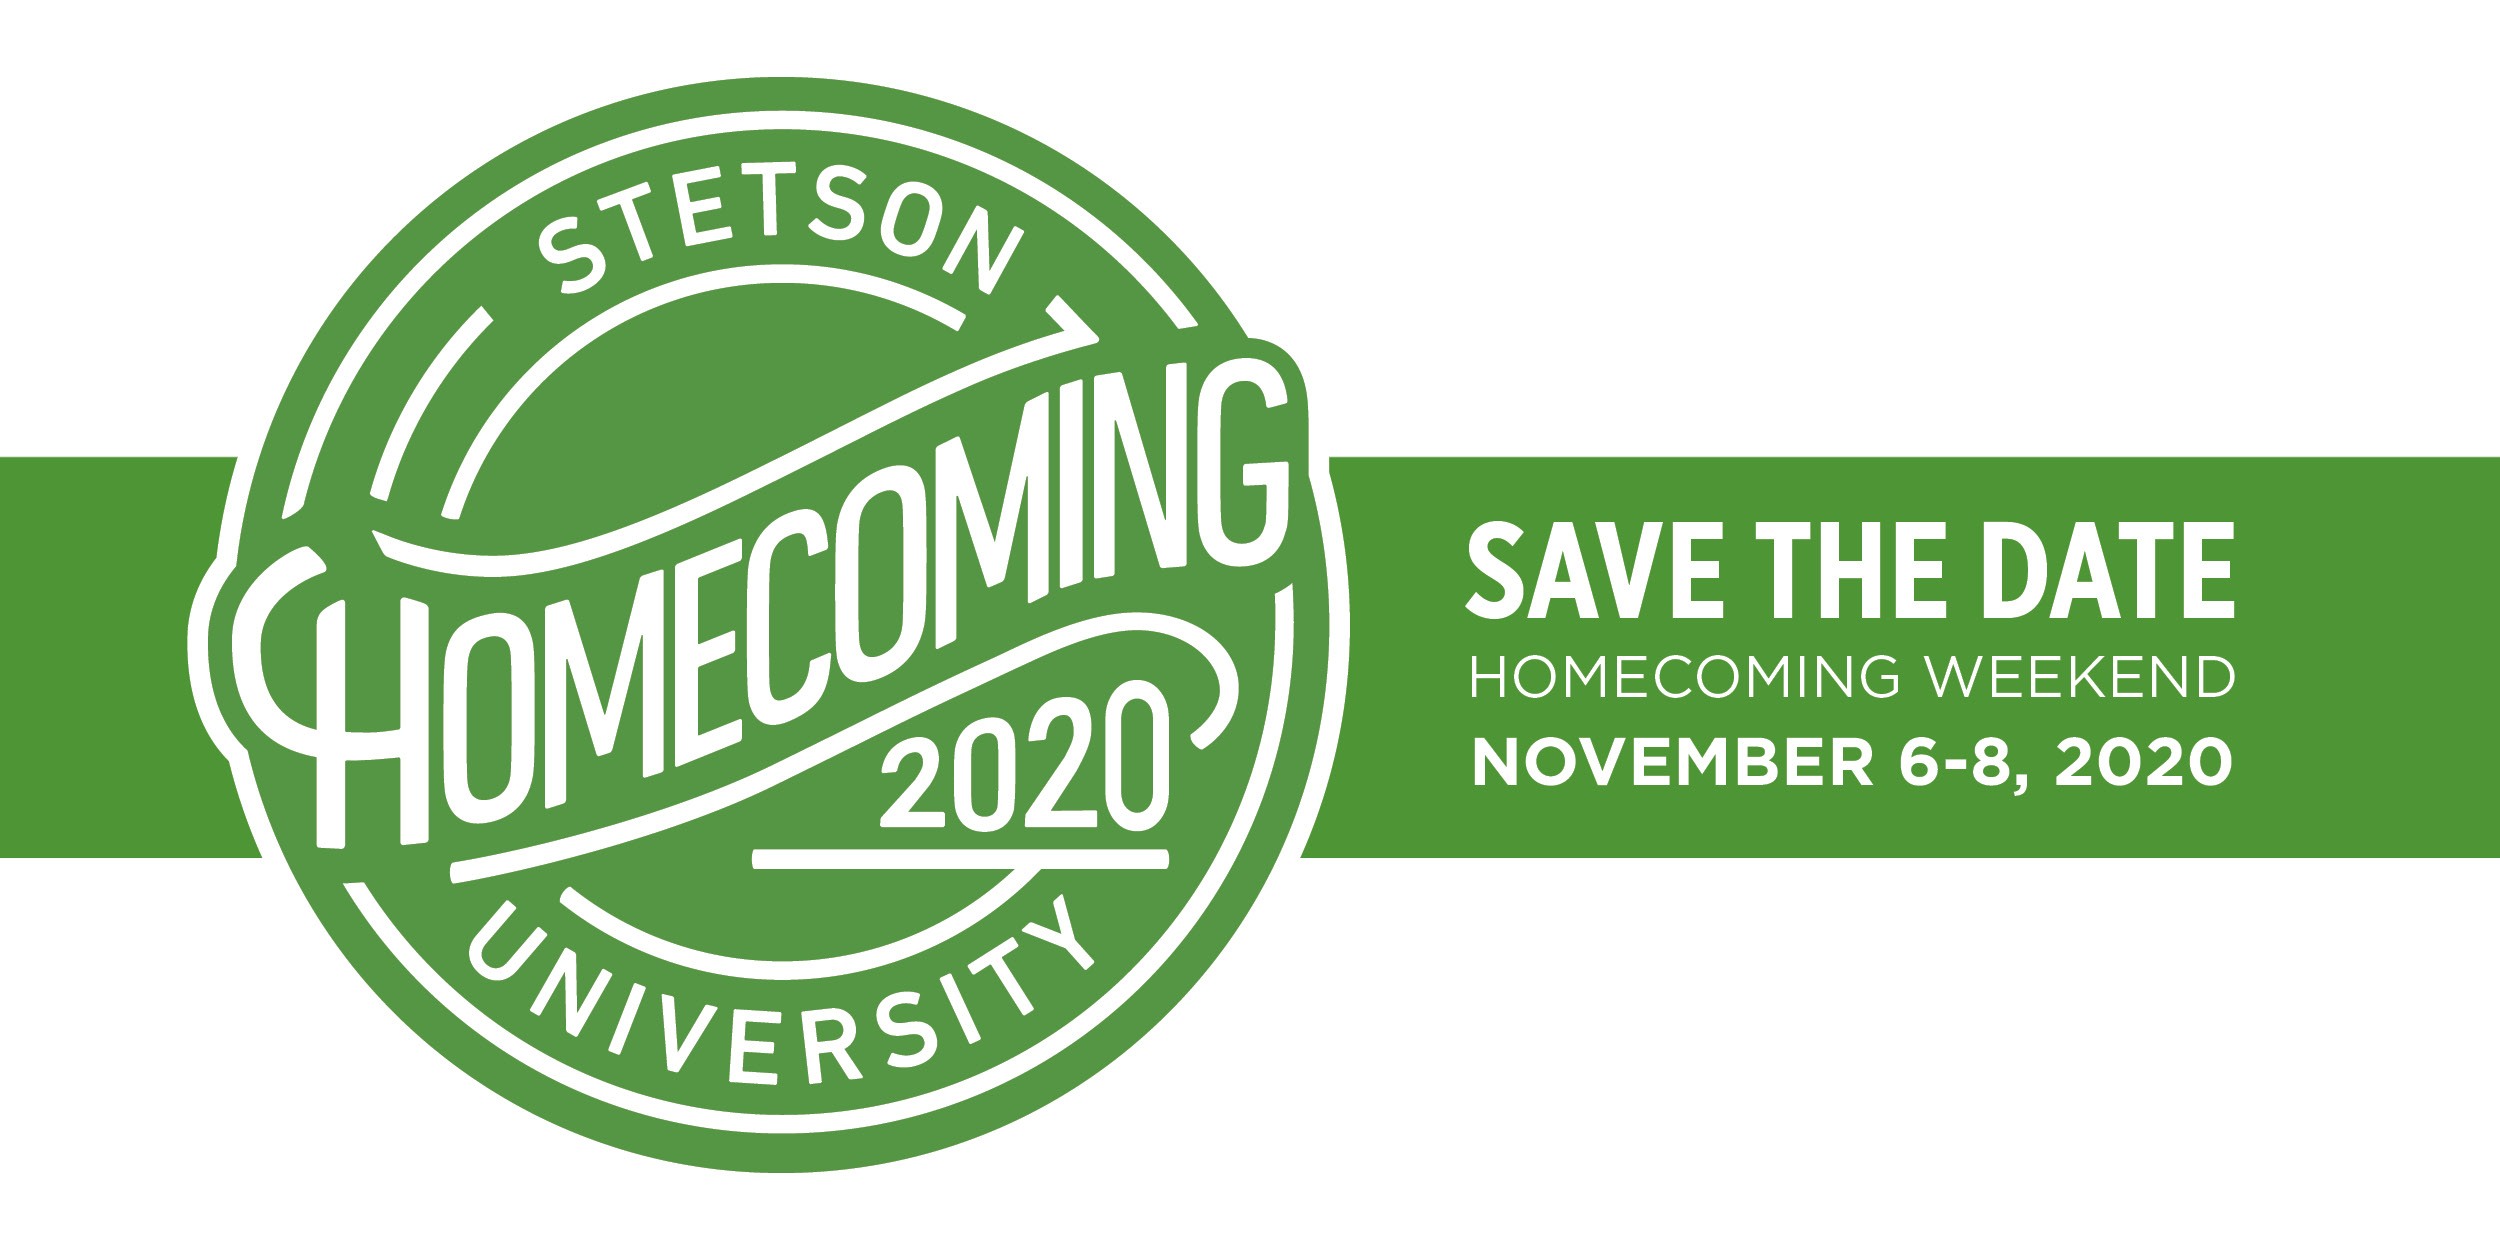 Save the date: November 6-8, 2020